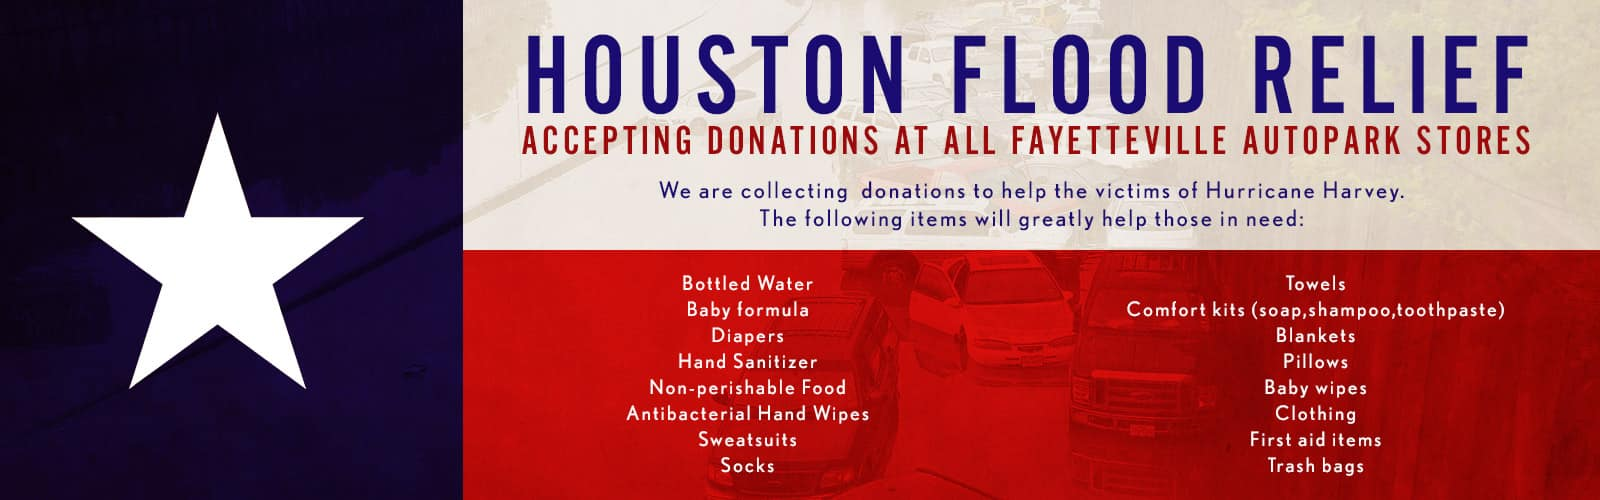 Houston Flood Relief Donations Banner